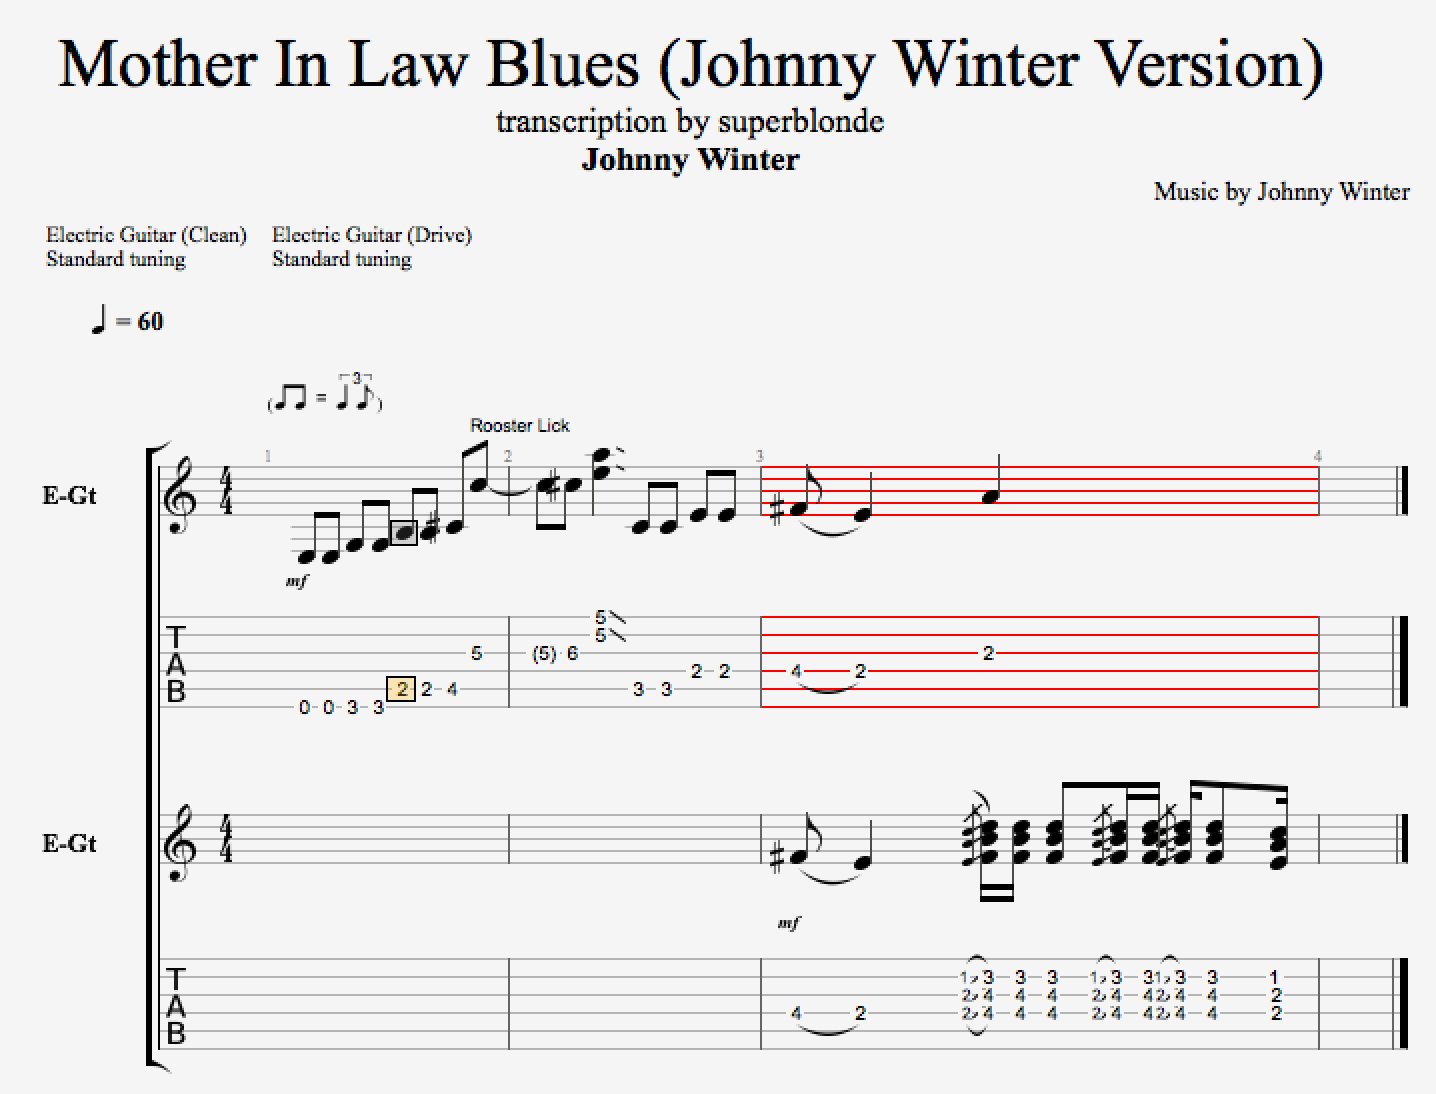 Mother-In-Law-Blues-Johnny-Winter-superblonde1